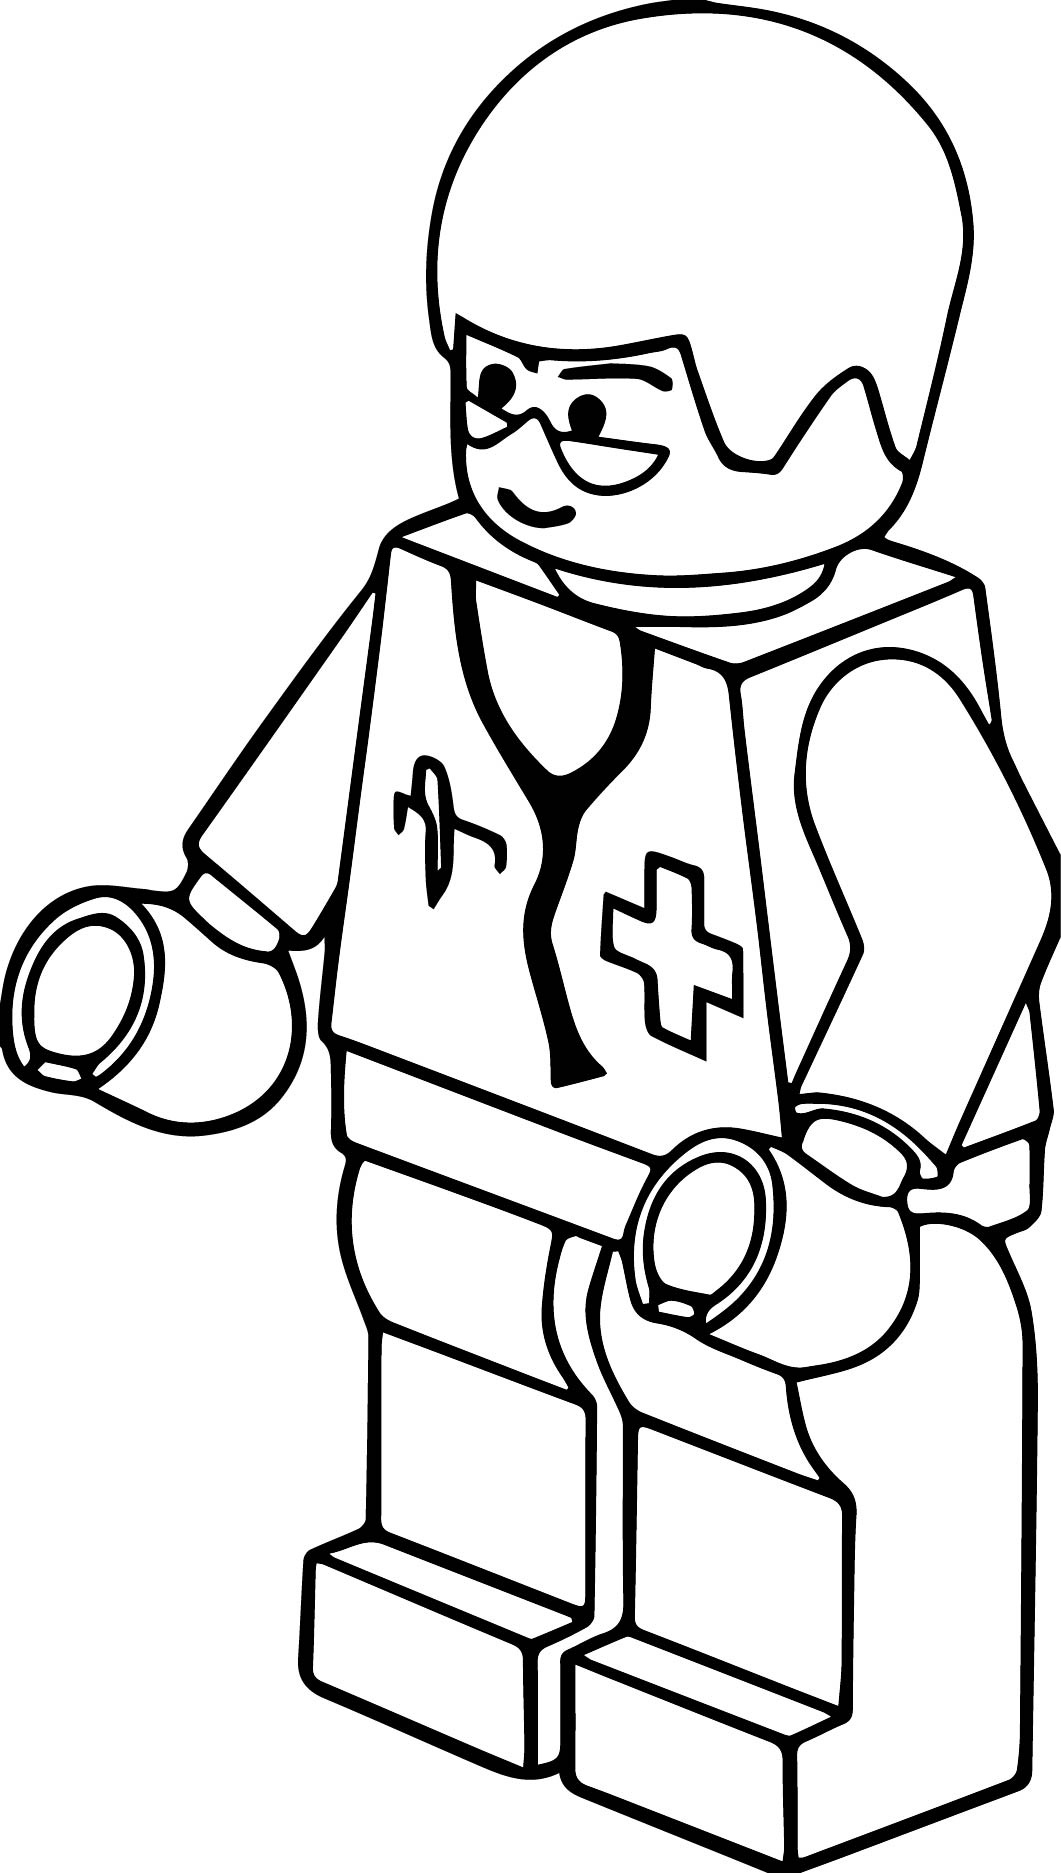 1061x1873 Lego Clip Art Pitr Lego Town Doctor Coloring Page Wecoloringpage